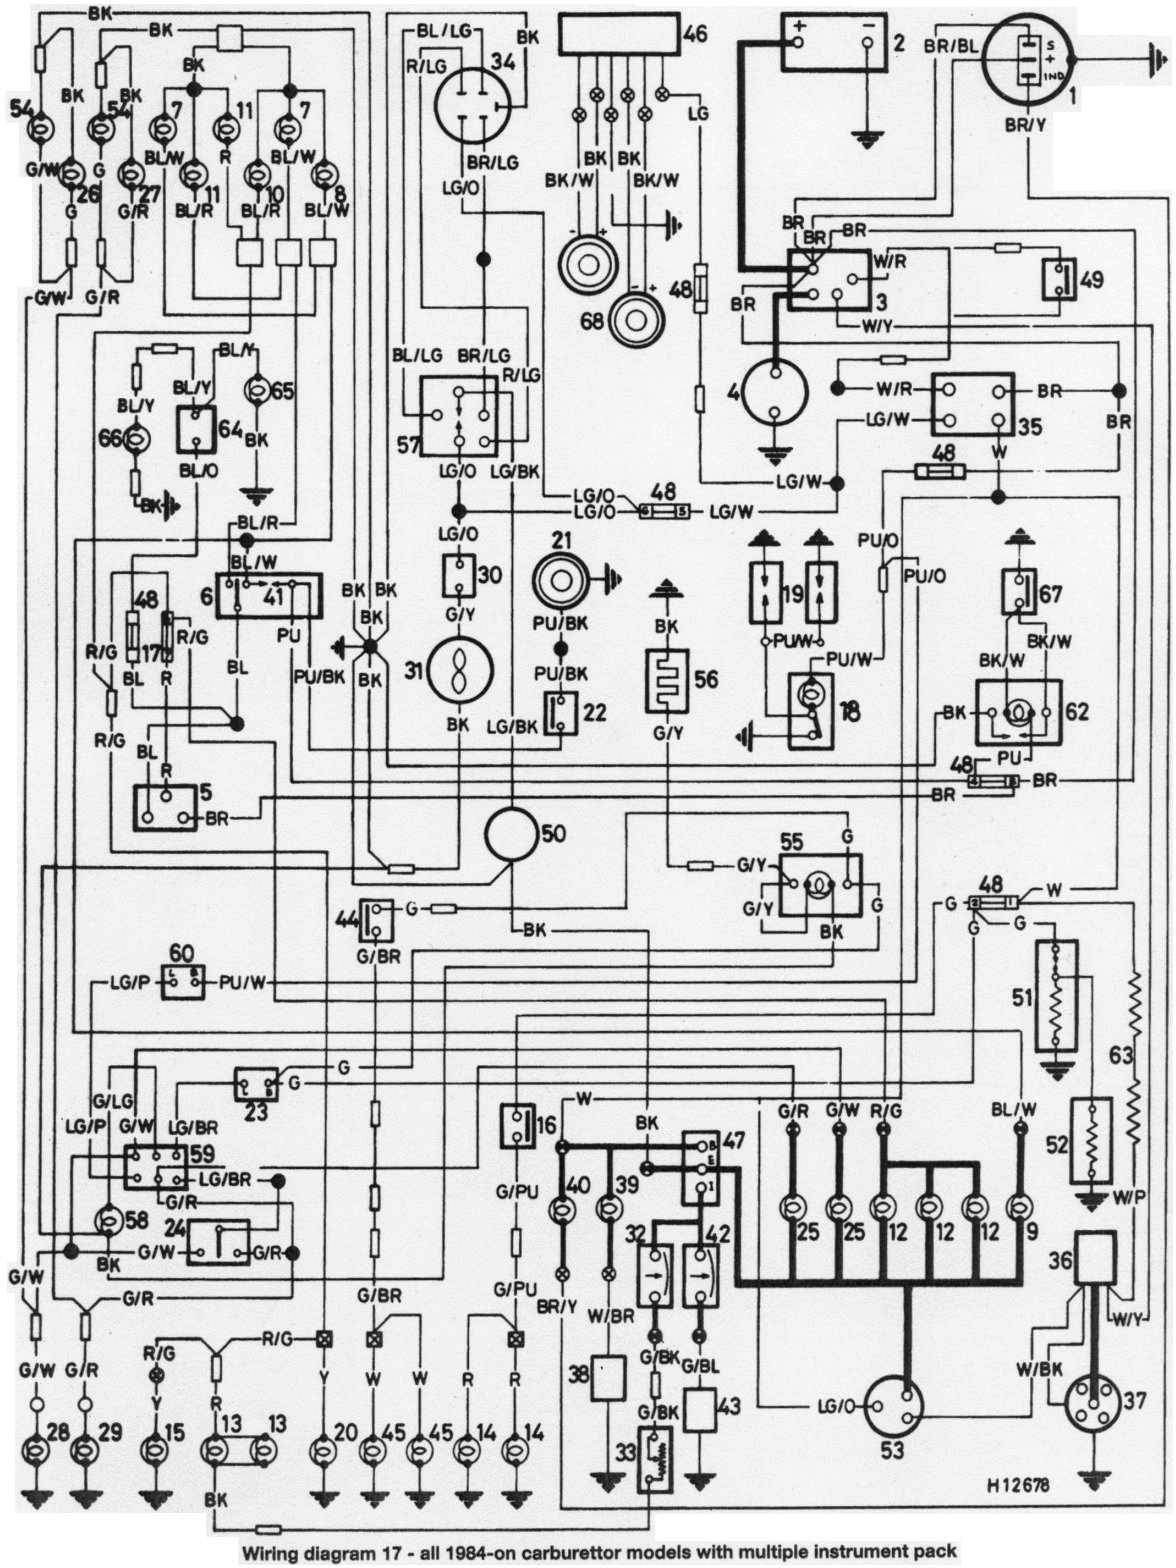 1uz Wiring Diagram Another Blog About Lexus Alternator 1kz Ecu Stateofindiana Co